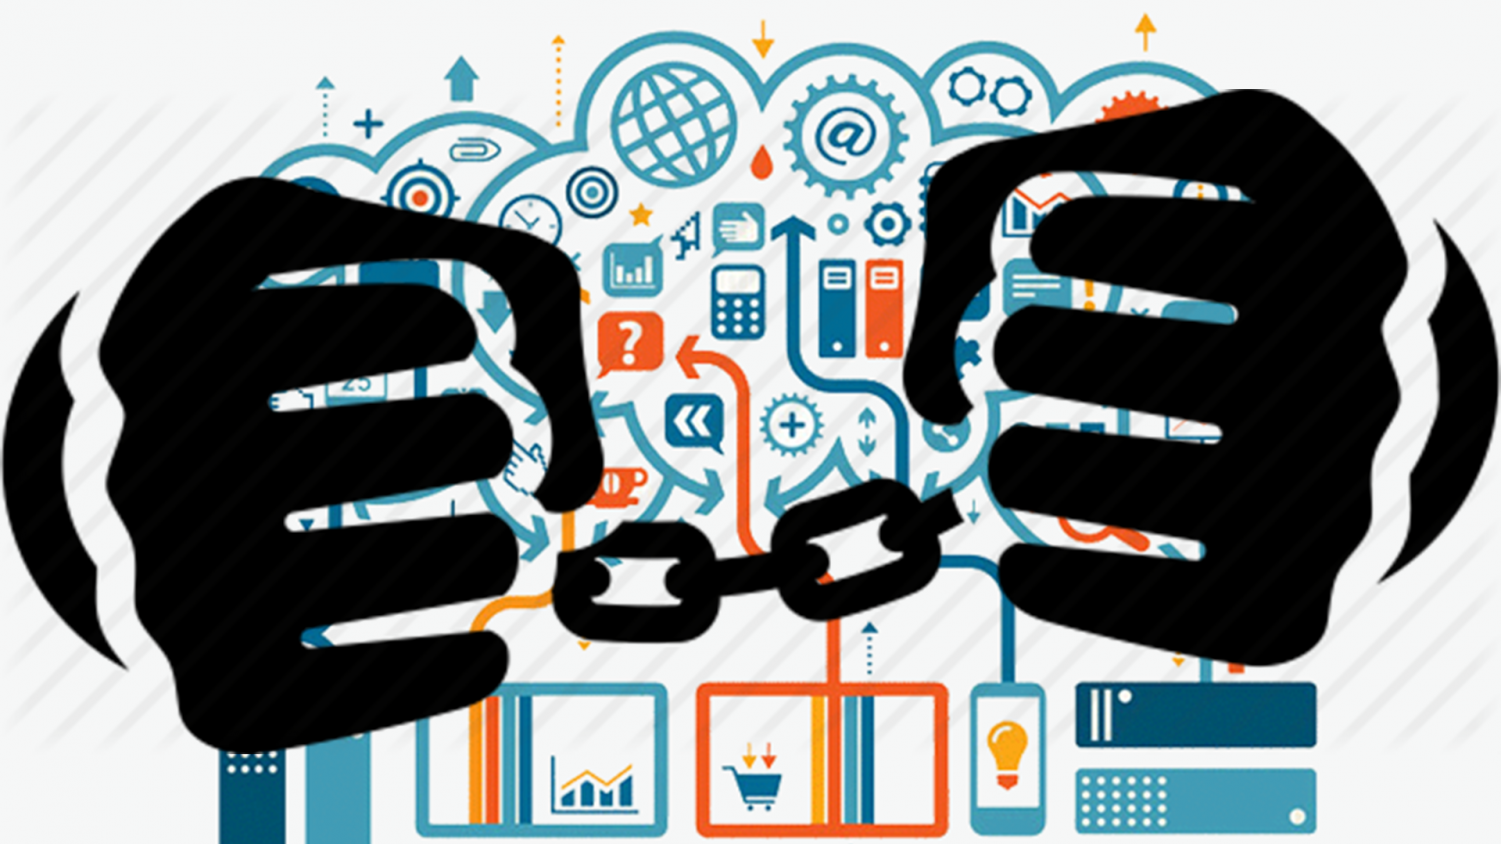 On the Internet, citizens are free to express their opinions, but there are numerous, implemented ways of regulating its usage and corresponding ethical responsibility.